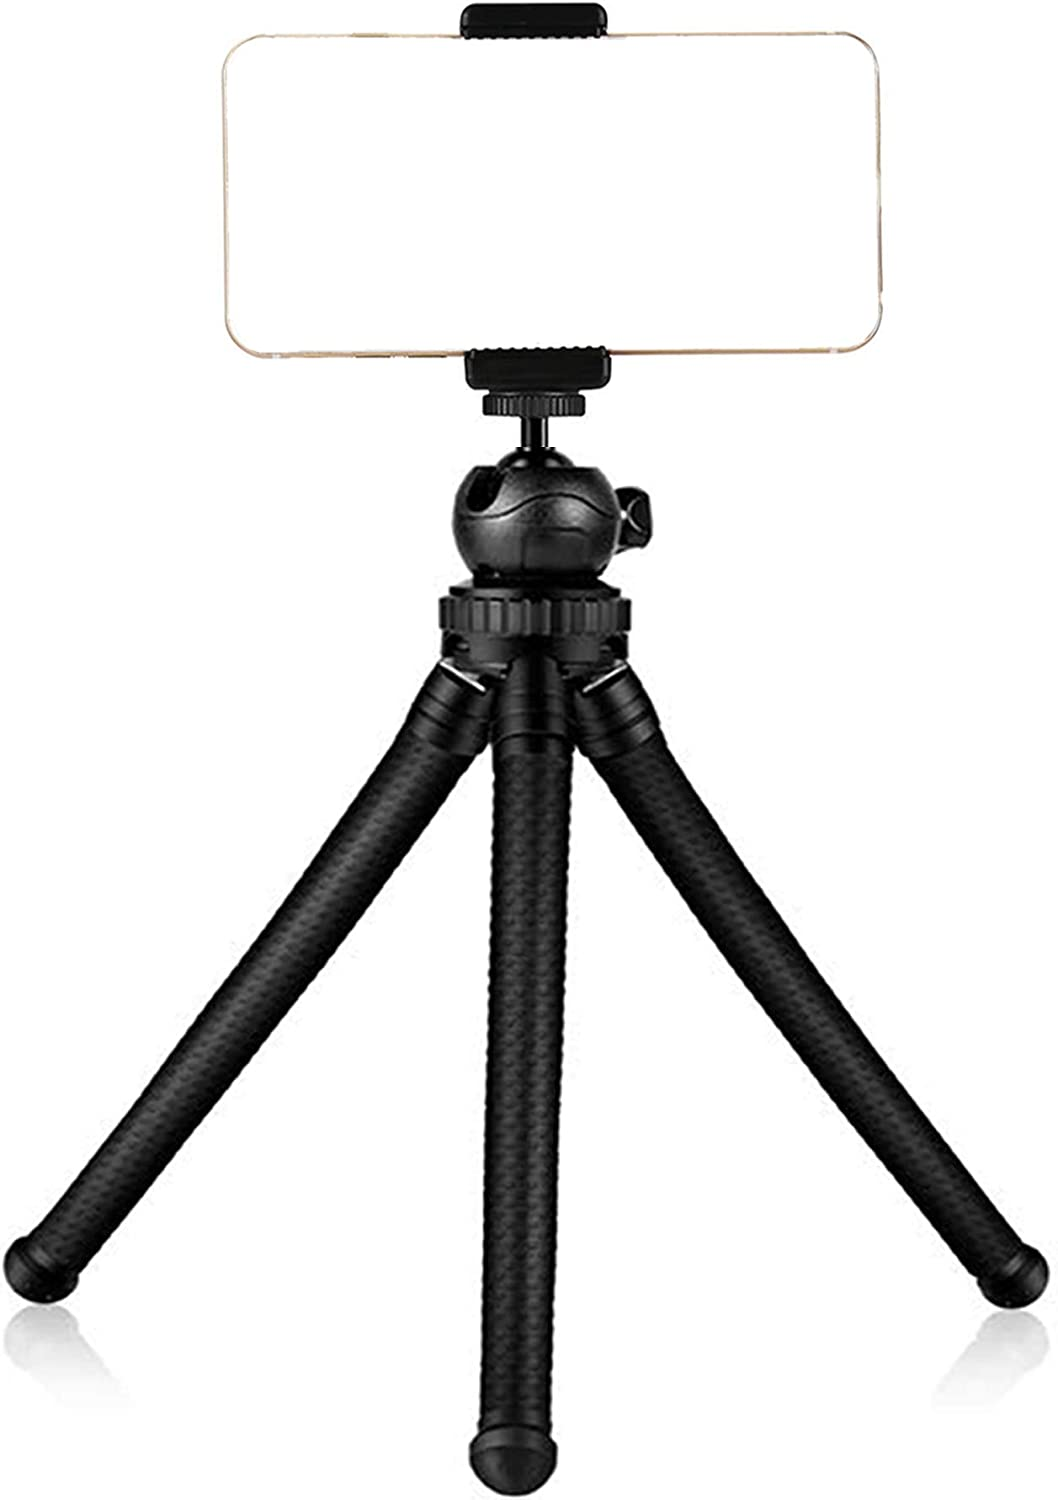 HOMEMO Phone Tripod Mount Stand Camera Holder Compatible with iPhone 11/11 Pro/11 Pro Max/X/Xs/XR Xs Max /8 7 7 Digtal Camera Galaxy s20 s20+ S20Ultra s10 Plus S9+ S8 S7 S7 Edge Camera and More Black